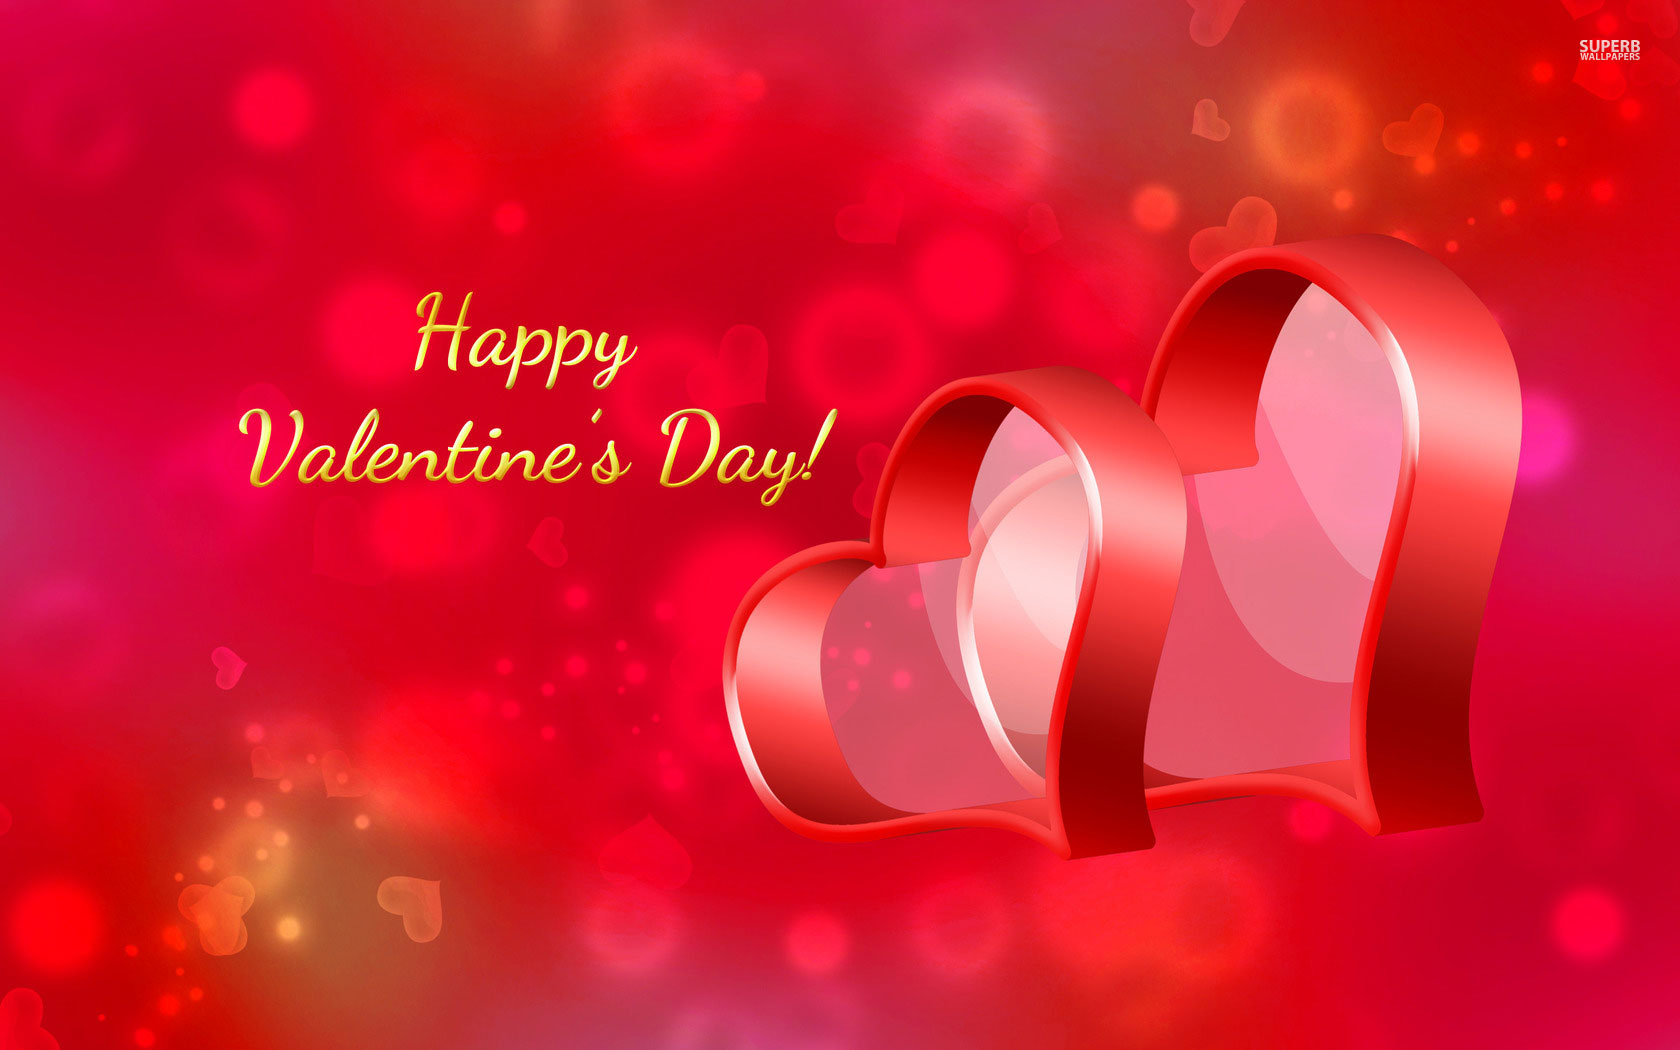 Chocolate Day Hd Wallpaper 60 Romantic Valentines Day Wallpapers And Hd Images